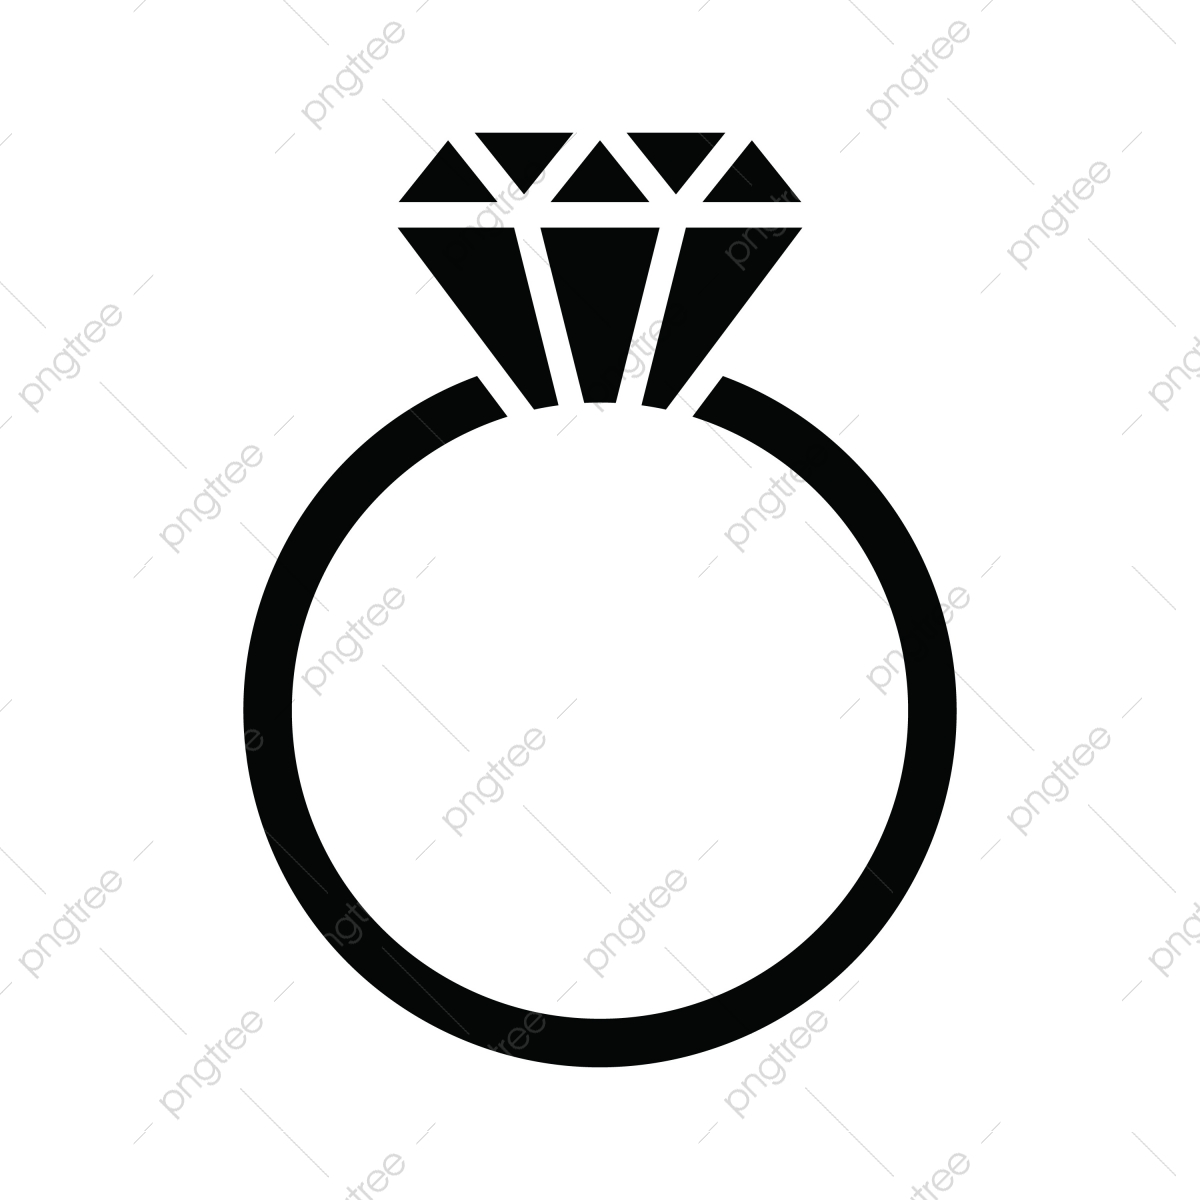 diamond ring icon diamond icons ring icons deco png and vector with transparent background for free download https pngtree com freepng diamond ring icon 5273880 html